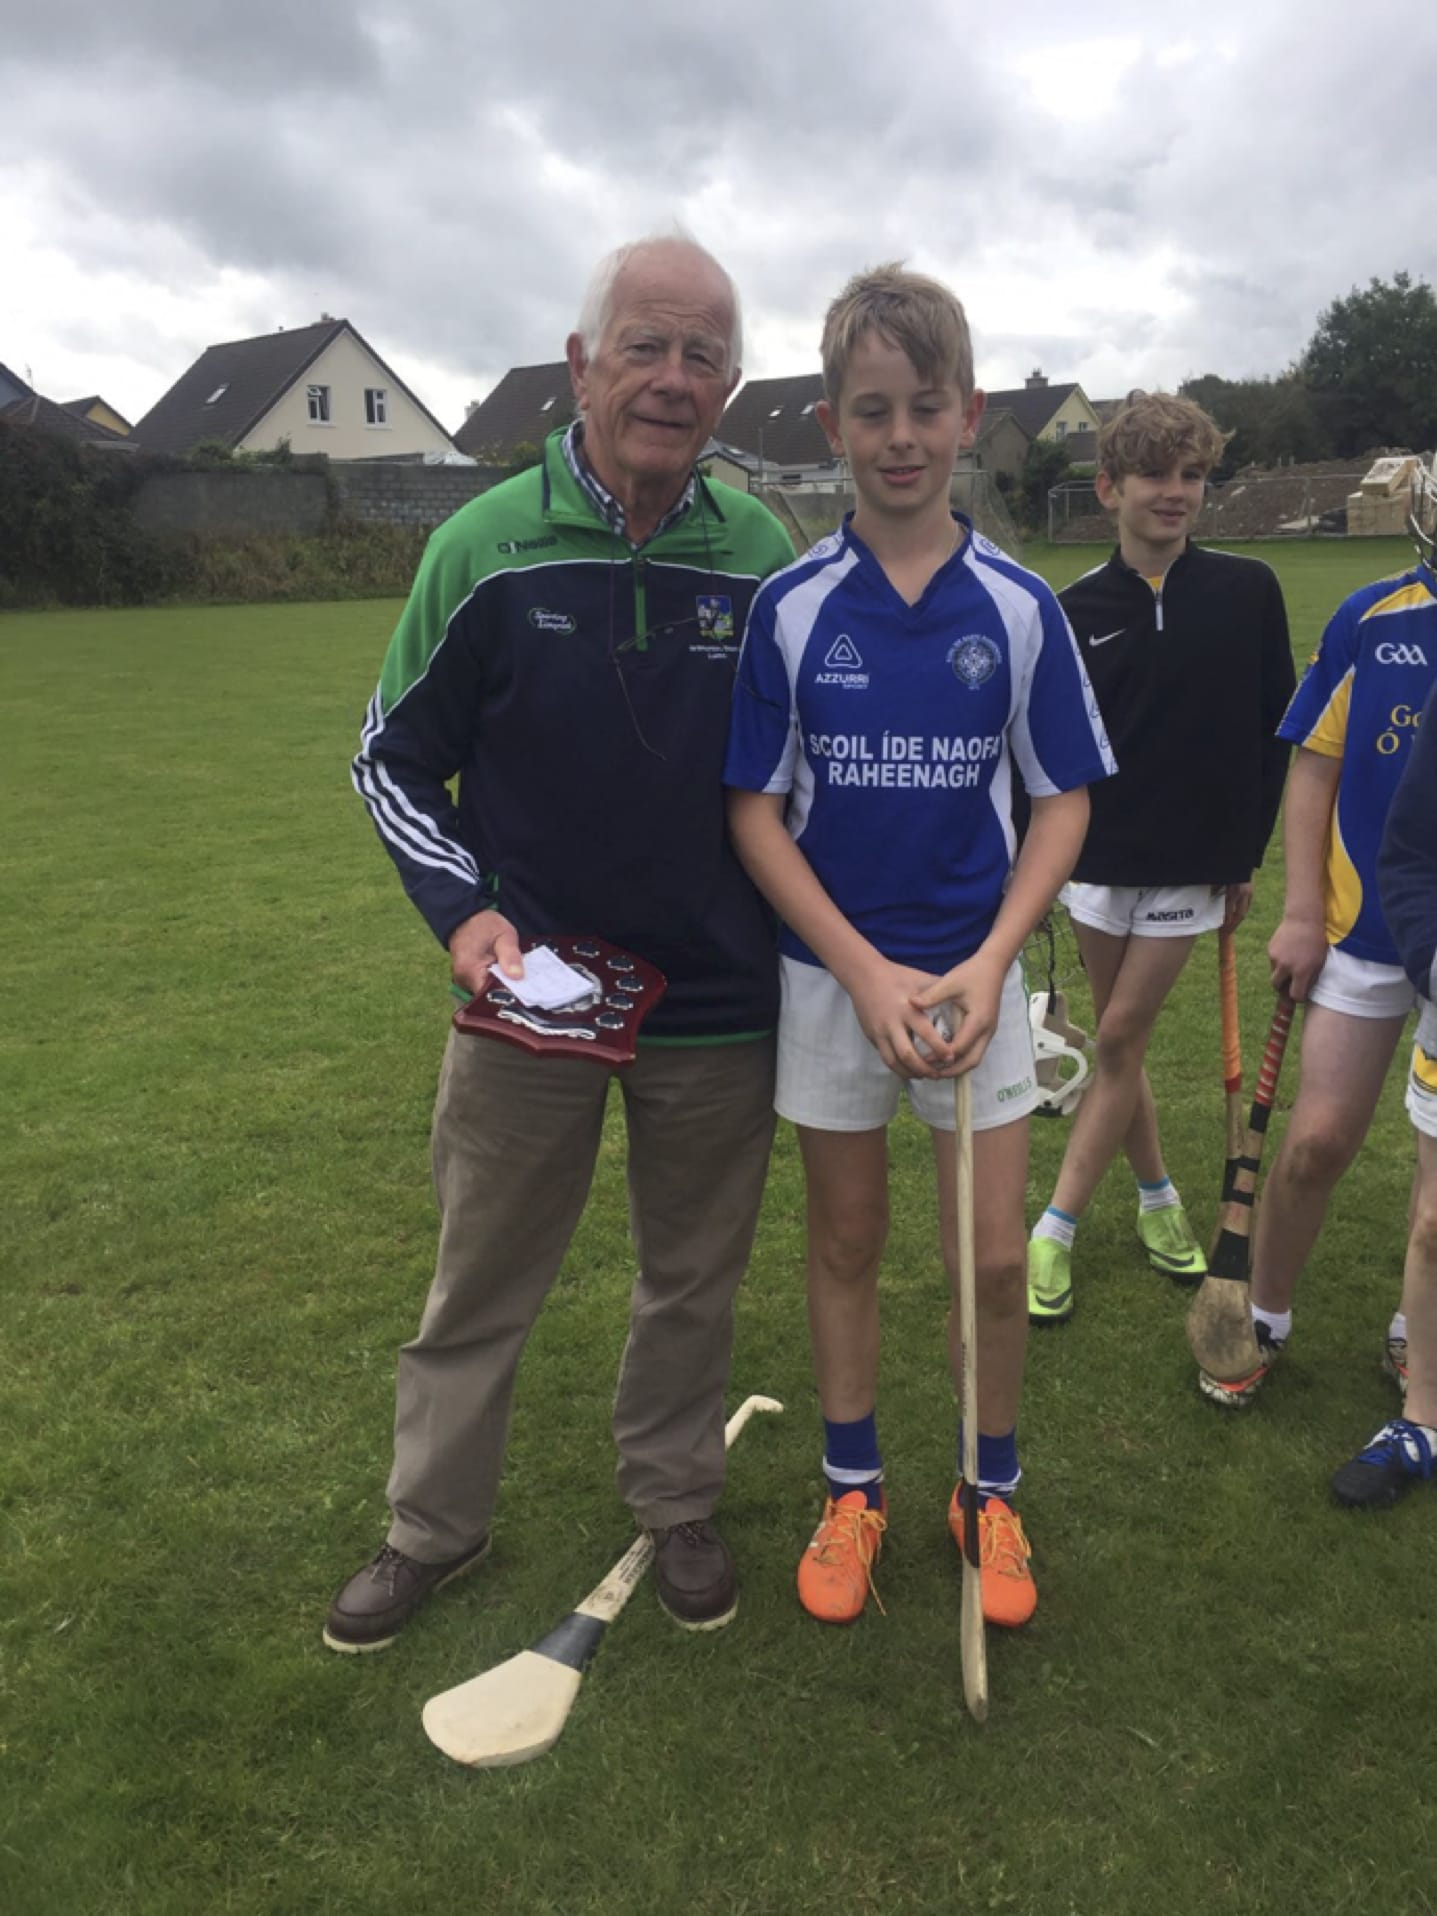 Oct 2017: Desmond College's Primary School Hurling and Camogie Blitz